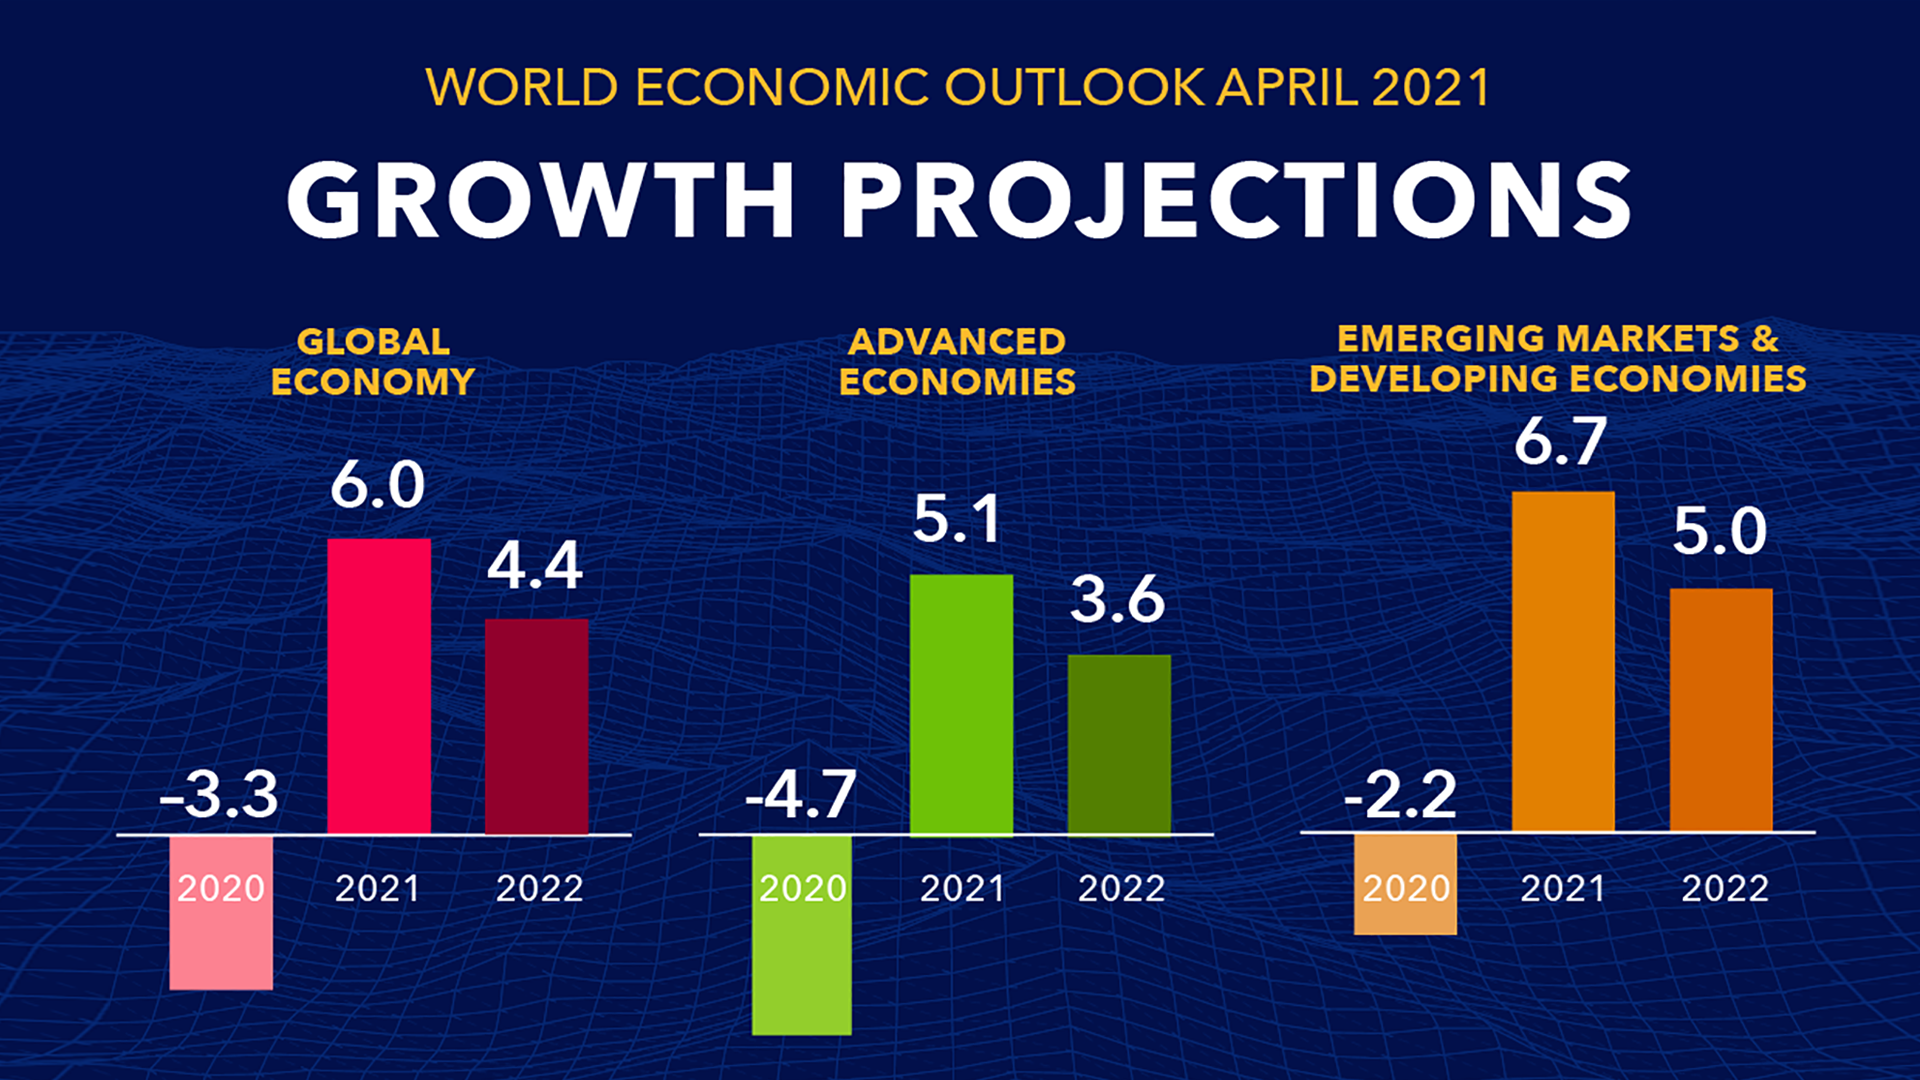 World Economic Outlook Growth Projections